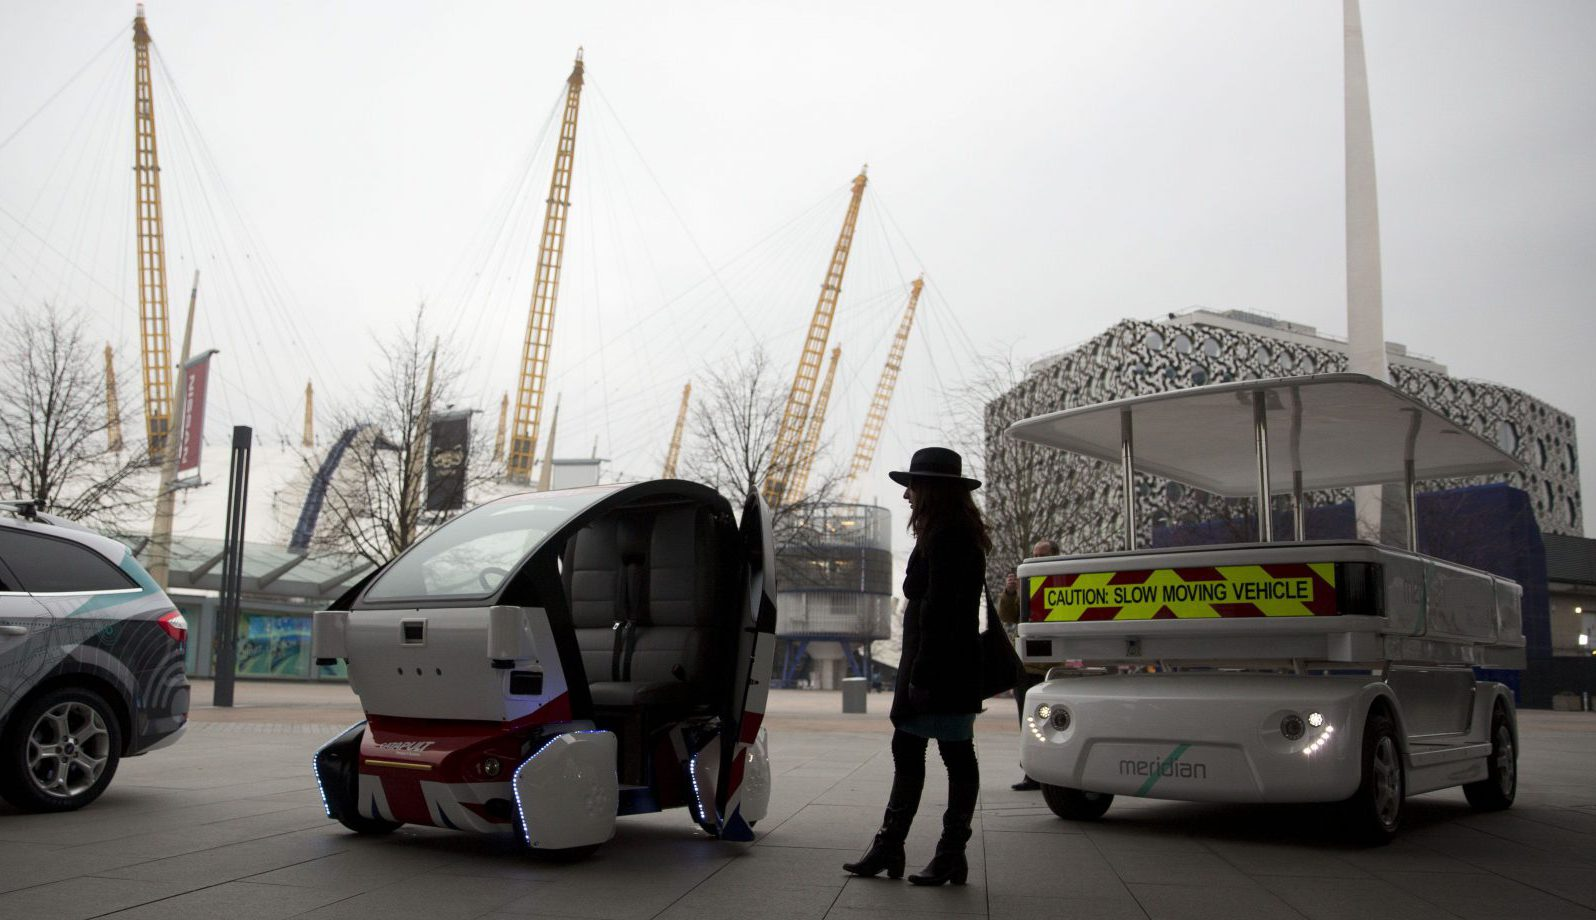 A woman poses for photographers beside a prototype driverless car called a LUTZ (Low-carbon Urban Transport Zone) Pathfinder Pod, center, and a Meridian shuttle, right, during a launch event for the media near the O2 Arena in London